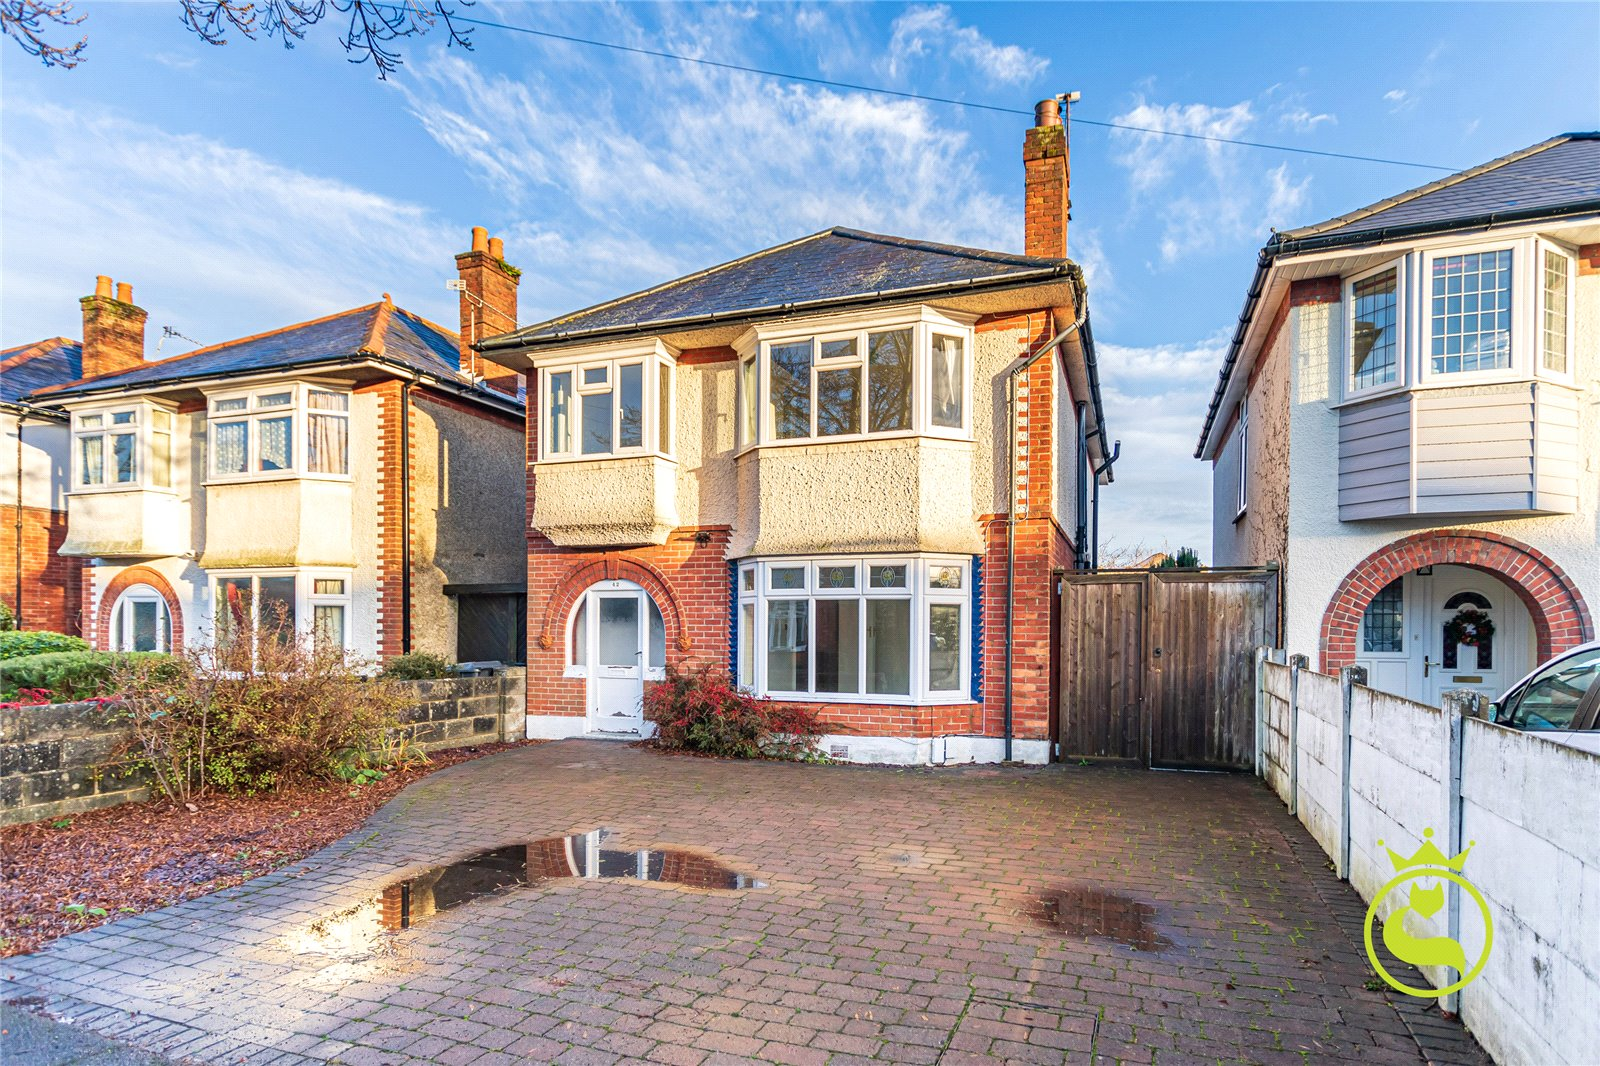 4 bed house to rent in Norton Road, Bournemouth 0